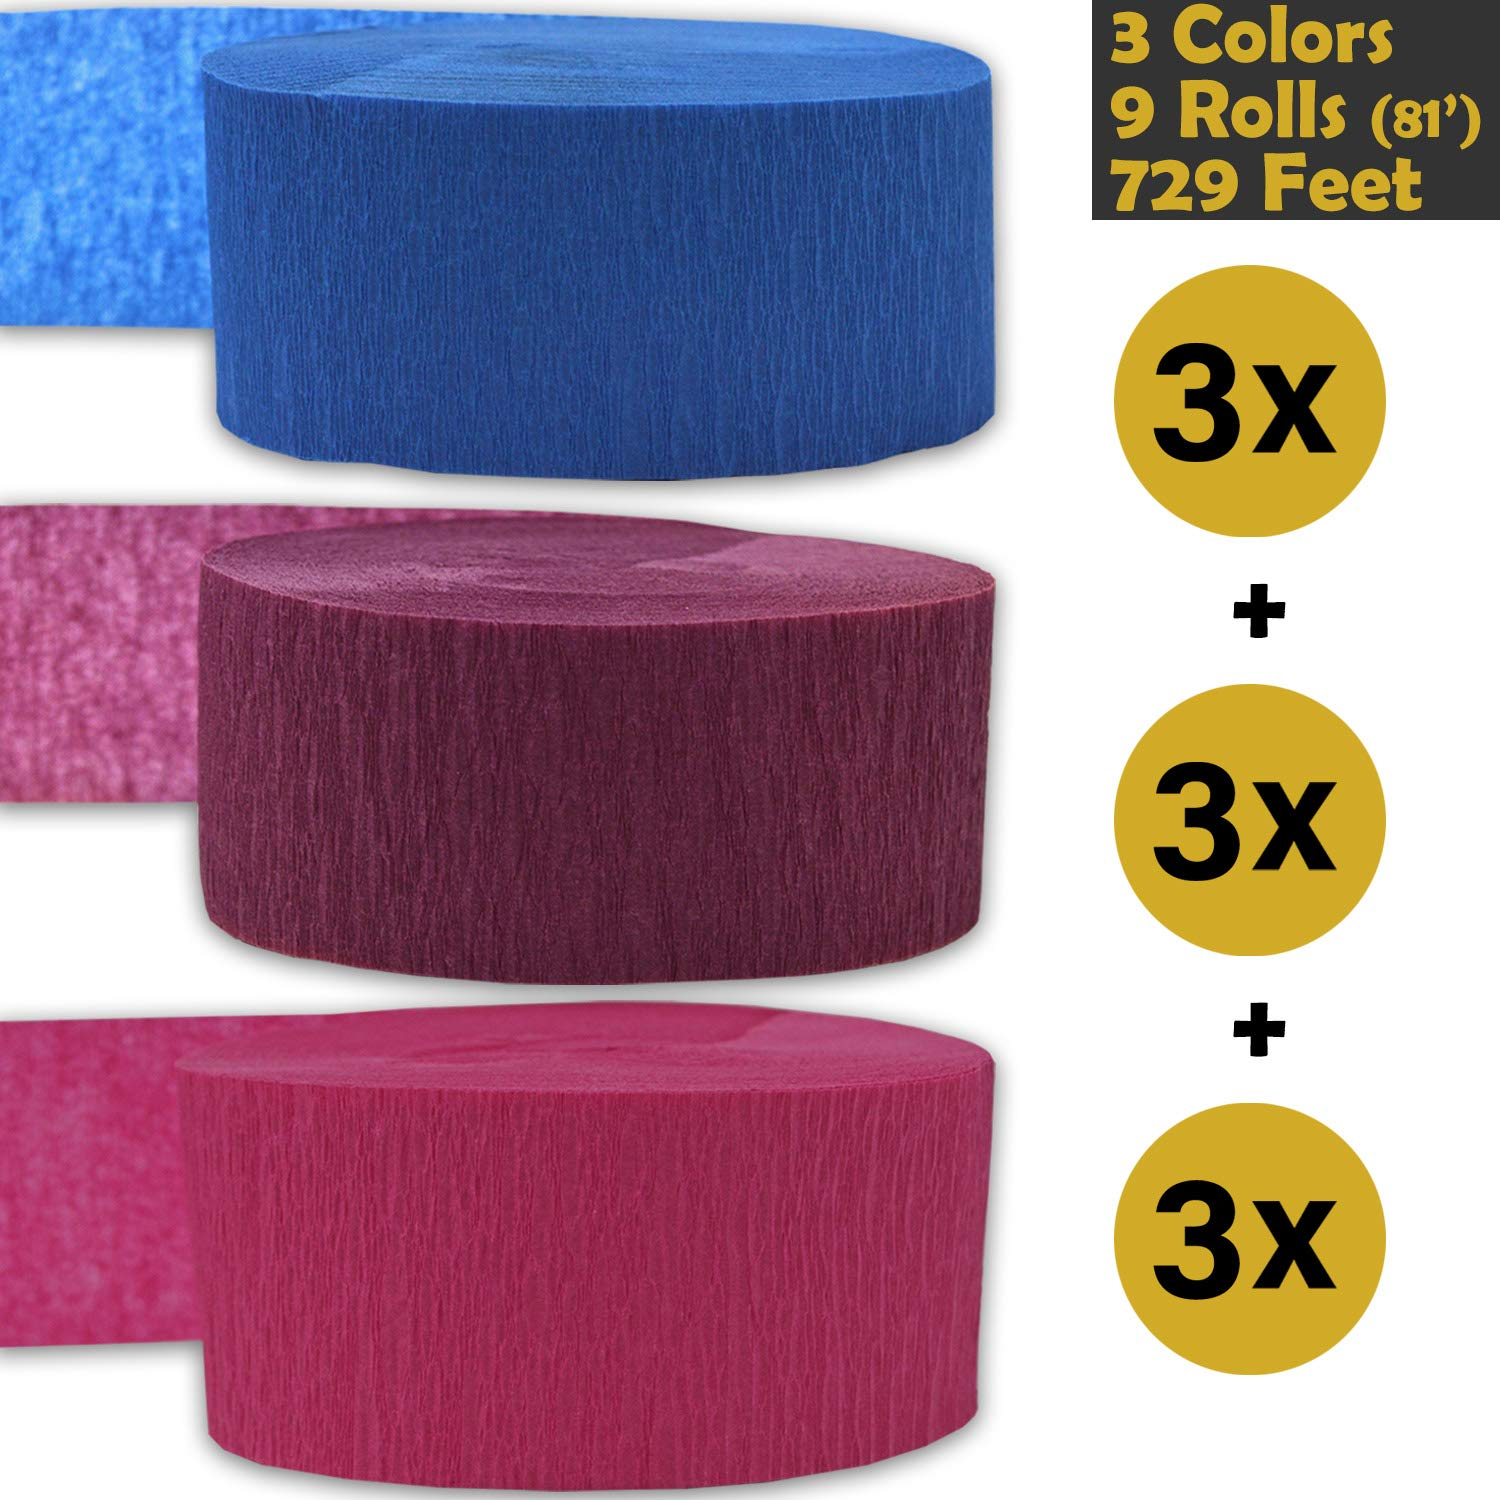 3 rolls per color, 81 foot each roll Sapphire Blue Sangria Flame Resistant Bleed Resistant 9 rolls Hot Pink - For party Decorations and Crafts 3 Colors 739 ft 243 per color Made in USA Crepe Party Streamers